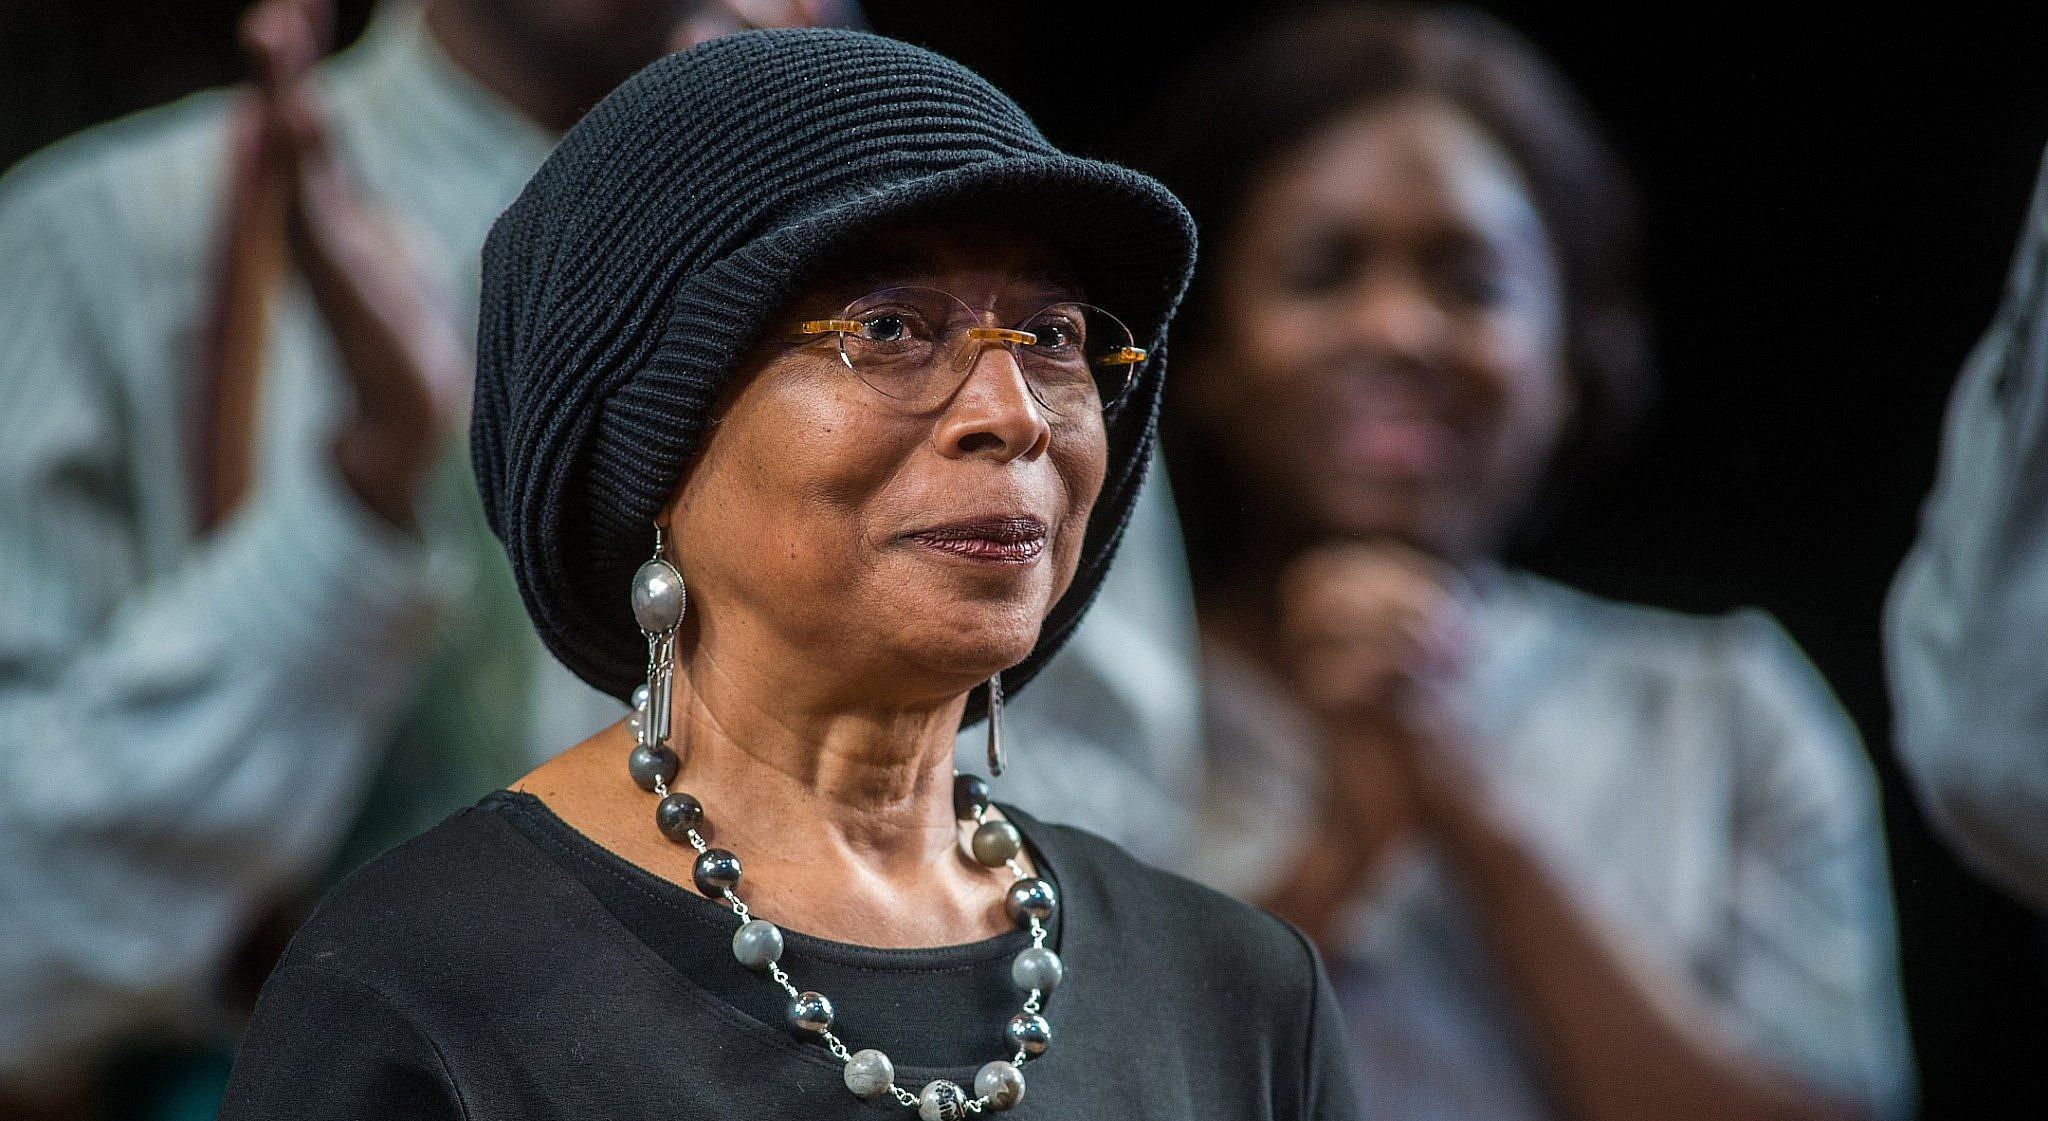 Alice Walker endorses anti-Semitic tract in NY Times interview